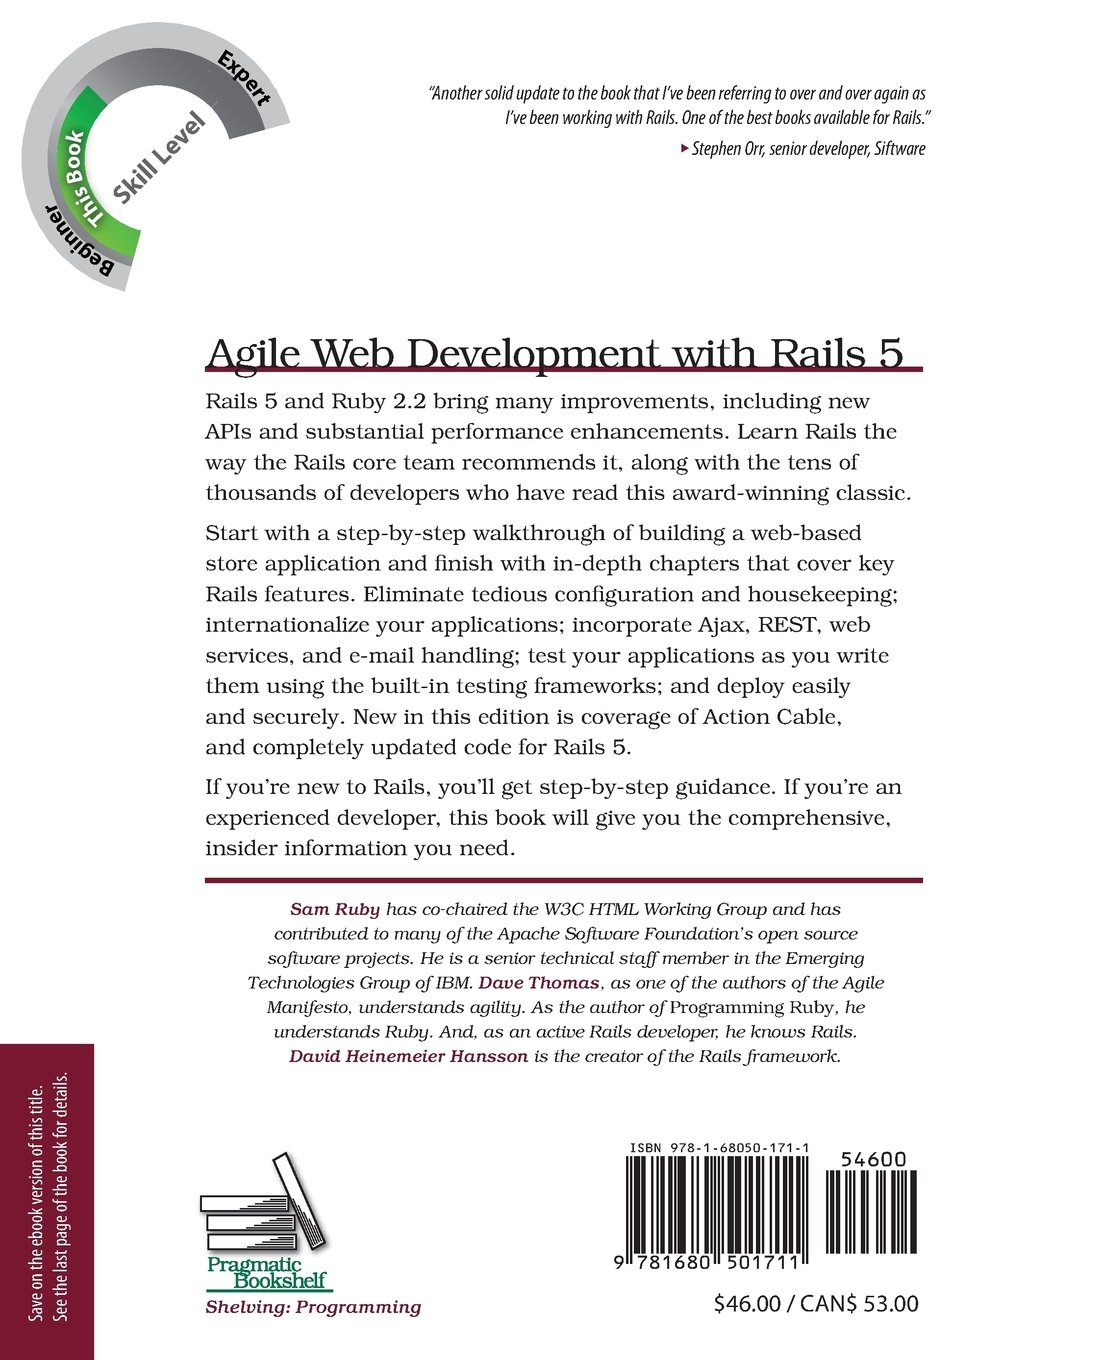 Agile web development with rails 5 sam ruby 9781680501711 books amazon ca